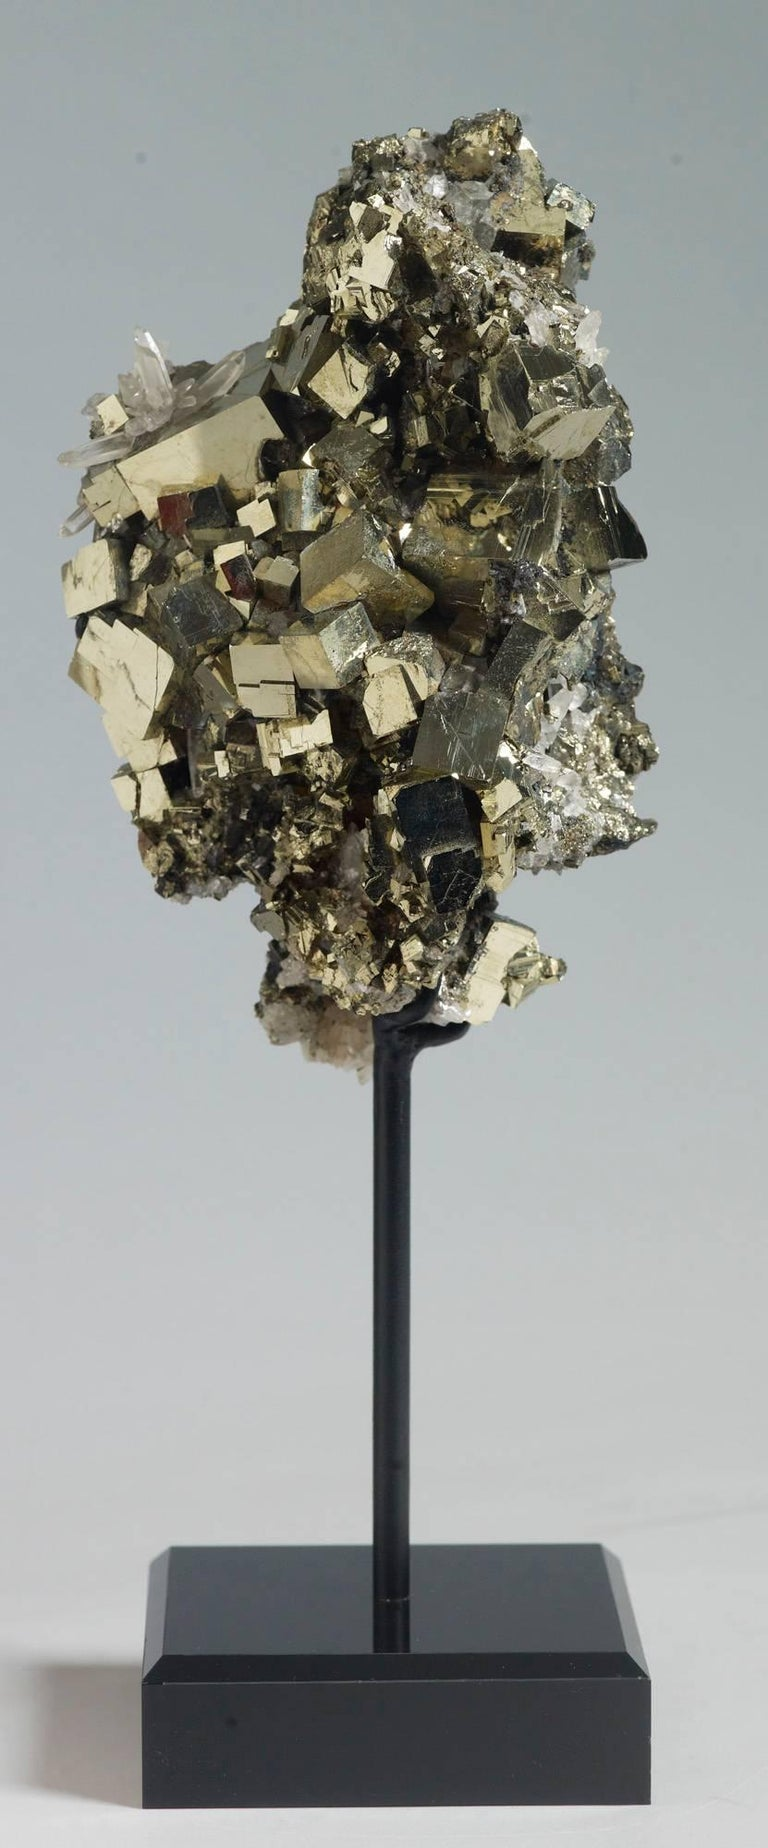 Cubic pyrite with embedded quartz crystals. Measures: 27 x 9 x 8 with stand.